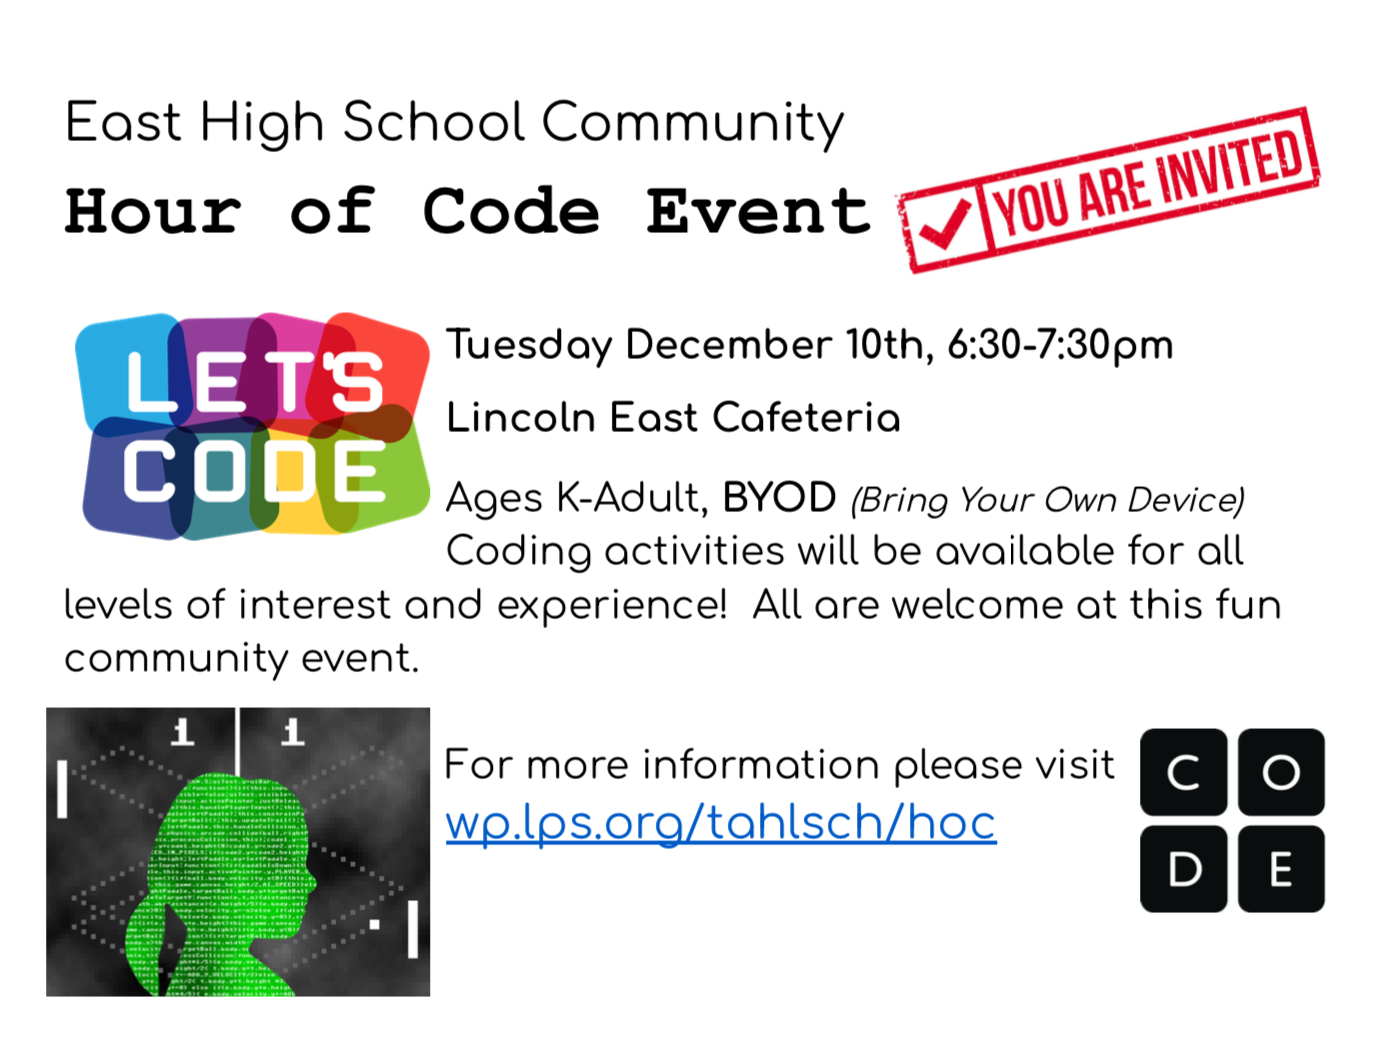 East Hour of Code Event